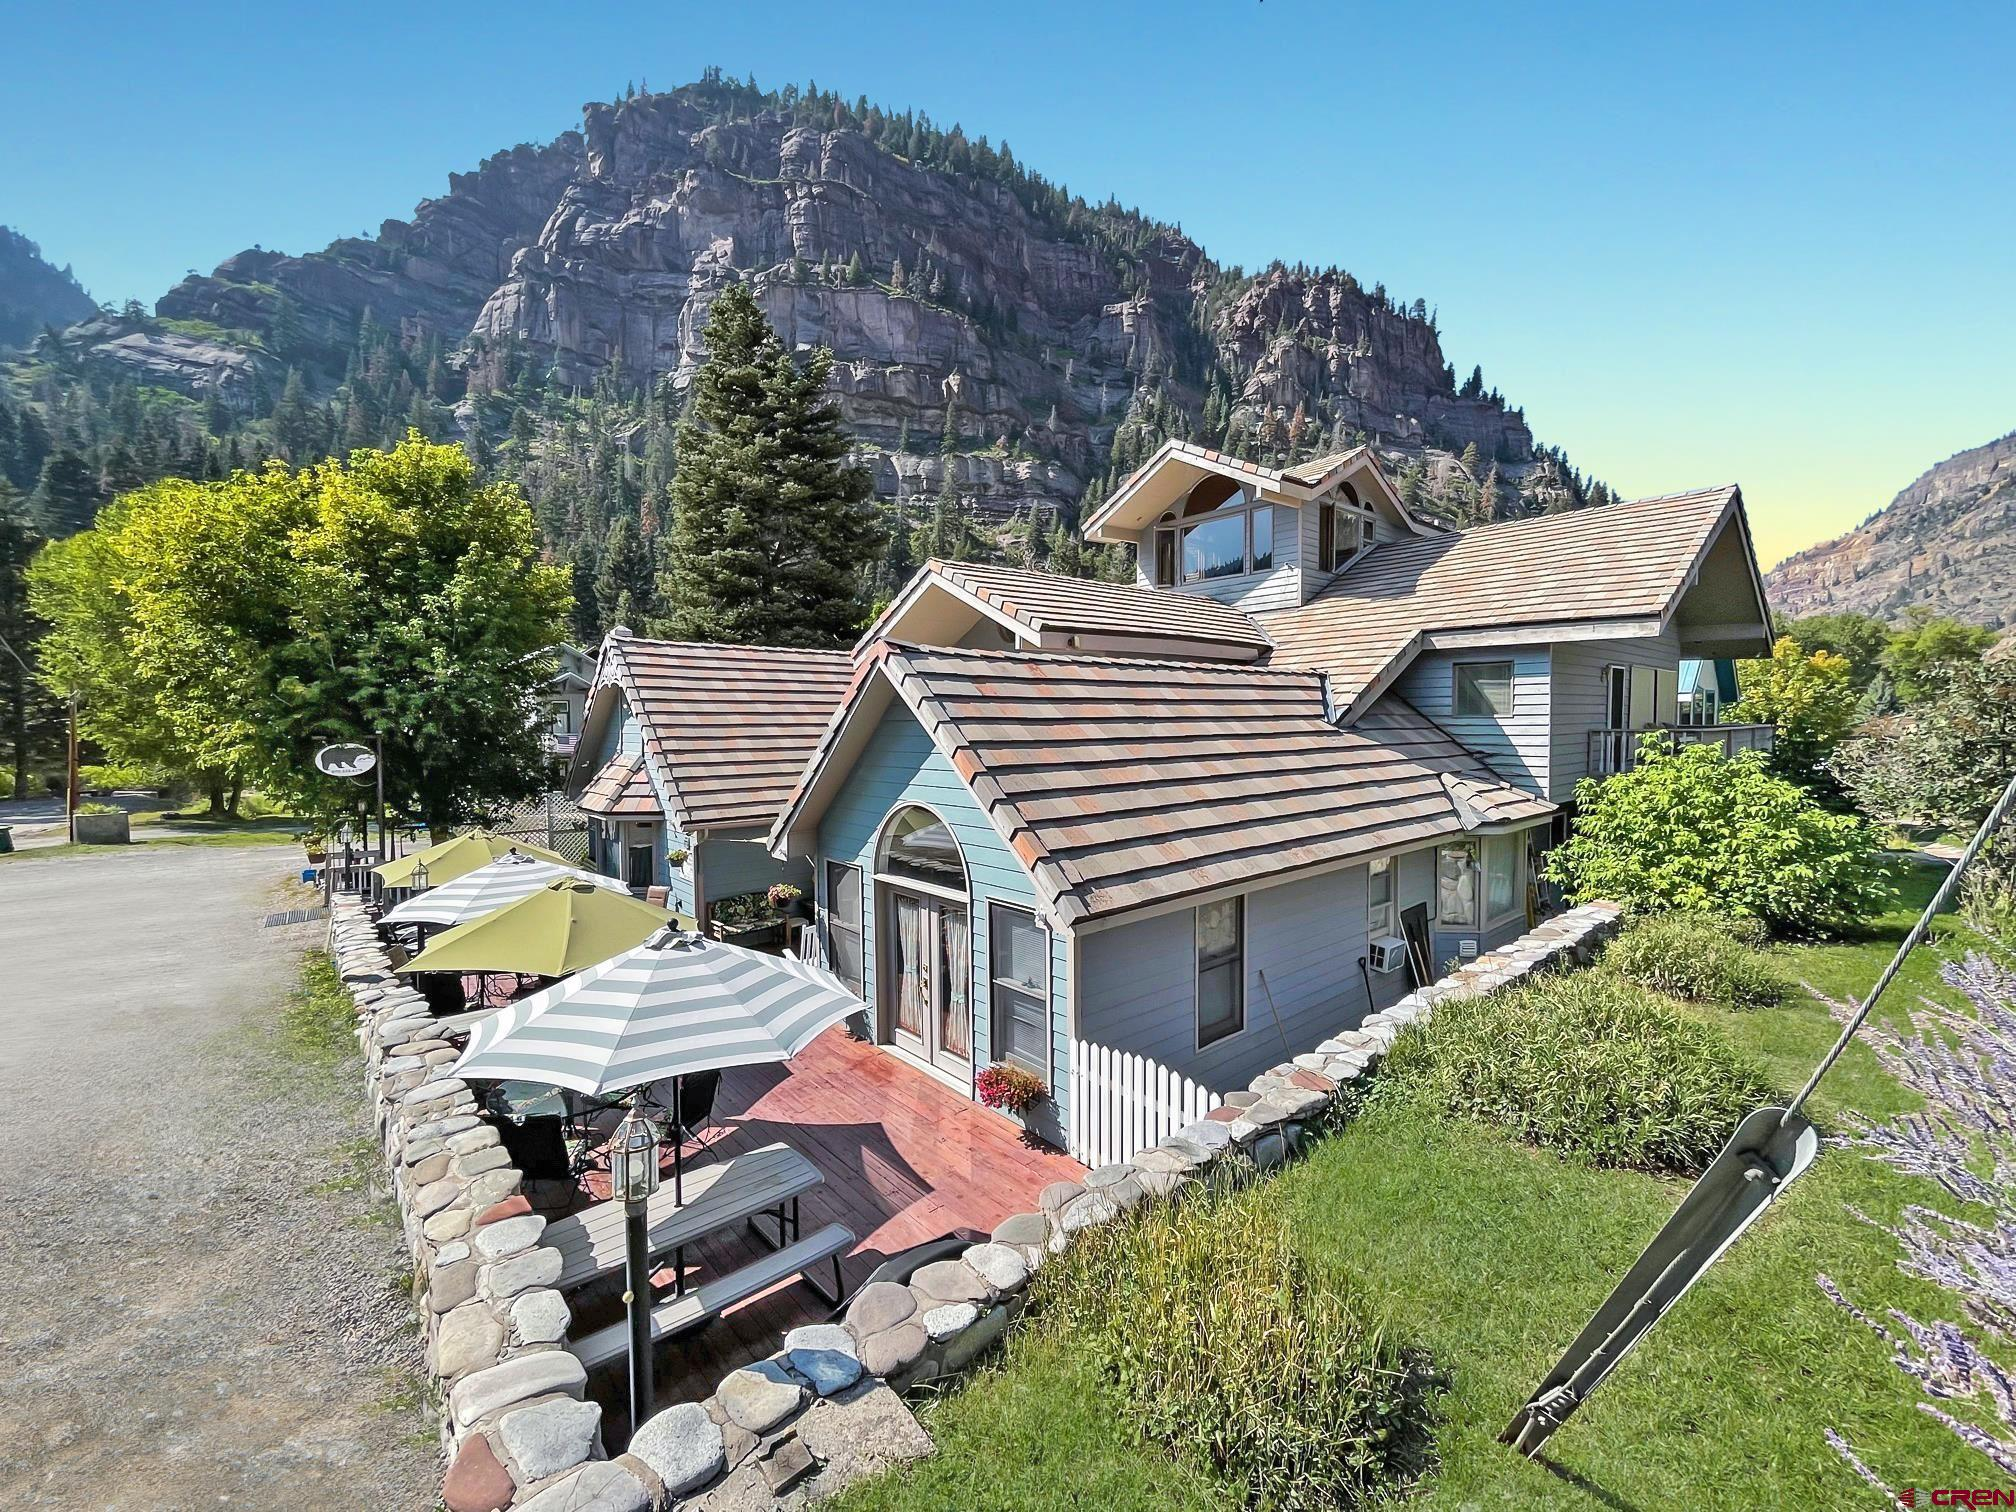 10.5% projected CAP rate in 2021!  This is the best income producing commercial property for sale in Ouray today.  NOW IS YOUR CHANCE to Live/Work/Invest in one of the most beautiful mountain towns in the Rocky Mountain West!   Occupying a premium location just 200 feet from the the Uncompahgre River near the bottom of 6th Avenue in downtown Ouray, the Black Bear Manor has been a successful, established business for almost 30 years...and in 2021 is recording all-time high reservation and revenue numbers.  Purpose built as a Bed & Breakfast (not a retro fitted house), the Black Bear Manor is offered turn-key ready and fully furnished with everything necessary for a smooth take over.    The Black Bear Manor B&B has a solid history of stellar reviews, including a 5 Star Rating and a Certificate of Excellence from TripAdvisor. Repeat guests are common and updated books supports asking price with a strong CAP.   Center of town location on 6th Avenue makes for an easy walk to downtown shopping and restaurant district, as well as the new Ouray Via Ferrata and the world-famous Ouray Ice Park.   This property features:  • 1696 sq. ft. wrap-around deck with picnic tables, a porch swing, umbrellas, café-style outdoor seating, and a 24-hour guest hot tub.  • 3rd Floor Observatory/game room provides a panoramic view of the surrounding cliffs and mountain peaks, including the Amphitheater, Mt. Hayden, US Mountain and Mt. Abrams, just to name a few.  • On-site and off-site parking. • 100-year multicolored, concrete tile roof. • Nine fully furnished, uniquely decorated guest rooms, some with fireplaces and whirlpool tubs.  • Owner/Manager quarters could be converted into a 10th guest room if so desired. • All rooms feature their own private bathroom and external entrance for convenience and easy ingress/egress. • Owner/Manager quarters could be converted into a 10th guest room if so desired • Large laundry Room with Commercial Dryer • Large basement for storage, a workshop, or futu